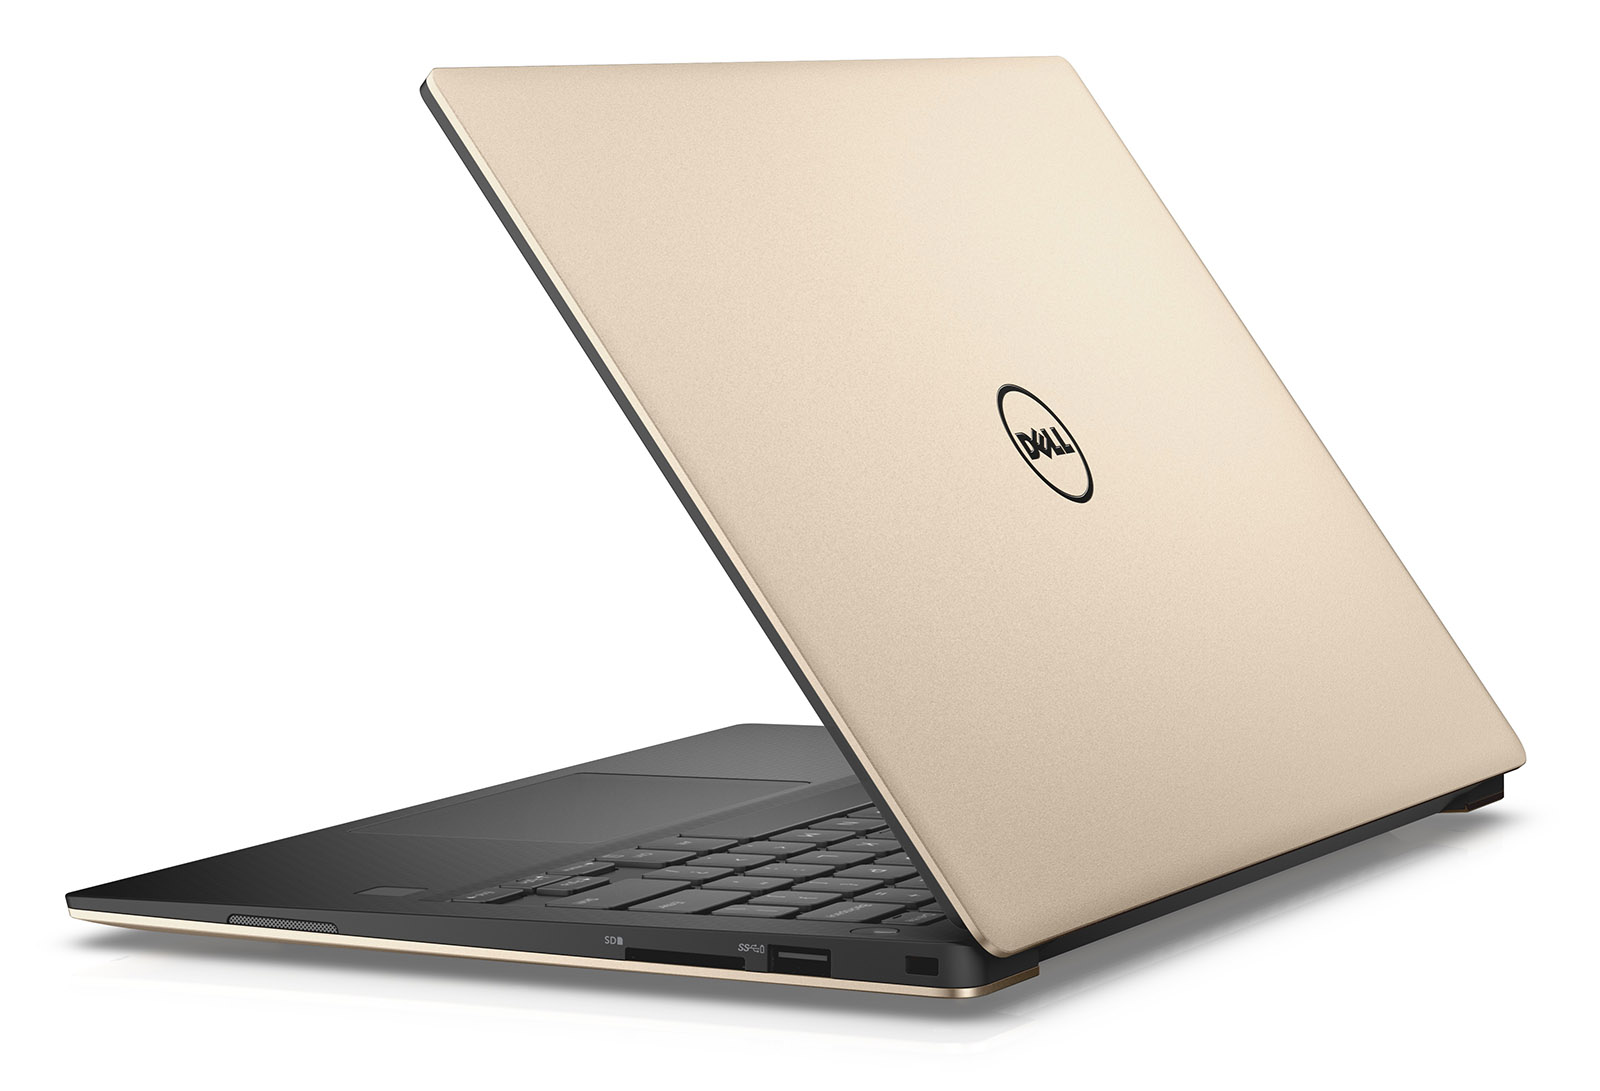 dell s xps 13 gets the very latest intel quad core cpus rh engadget com Dell XPS 13 Ultrabook Review dell xps 13 ultrabook manual pdf